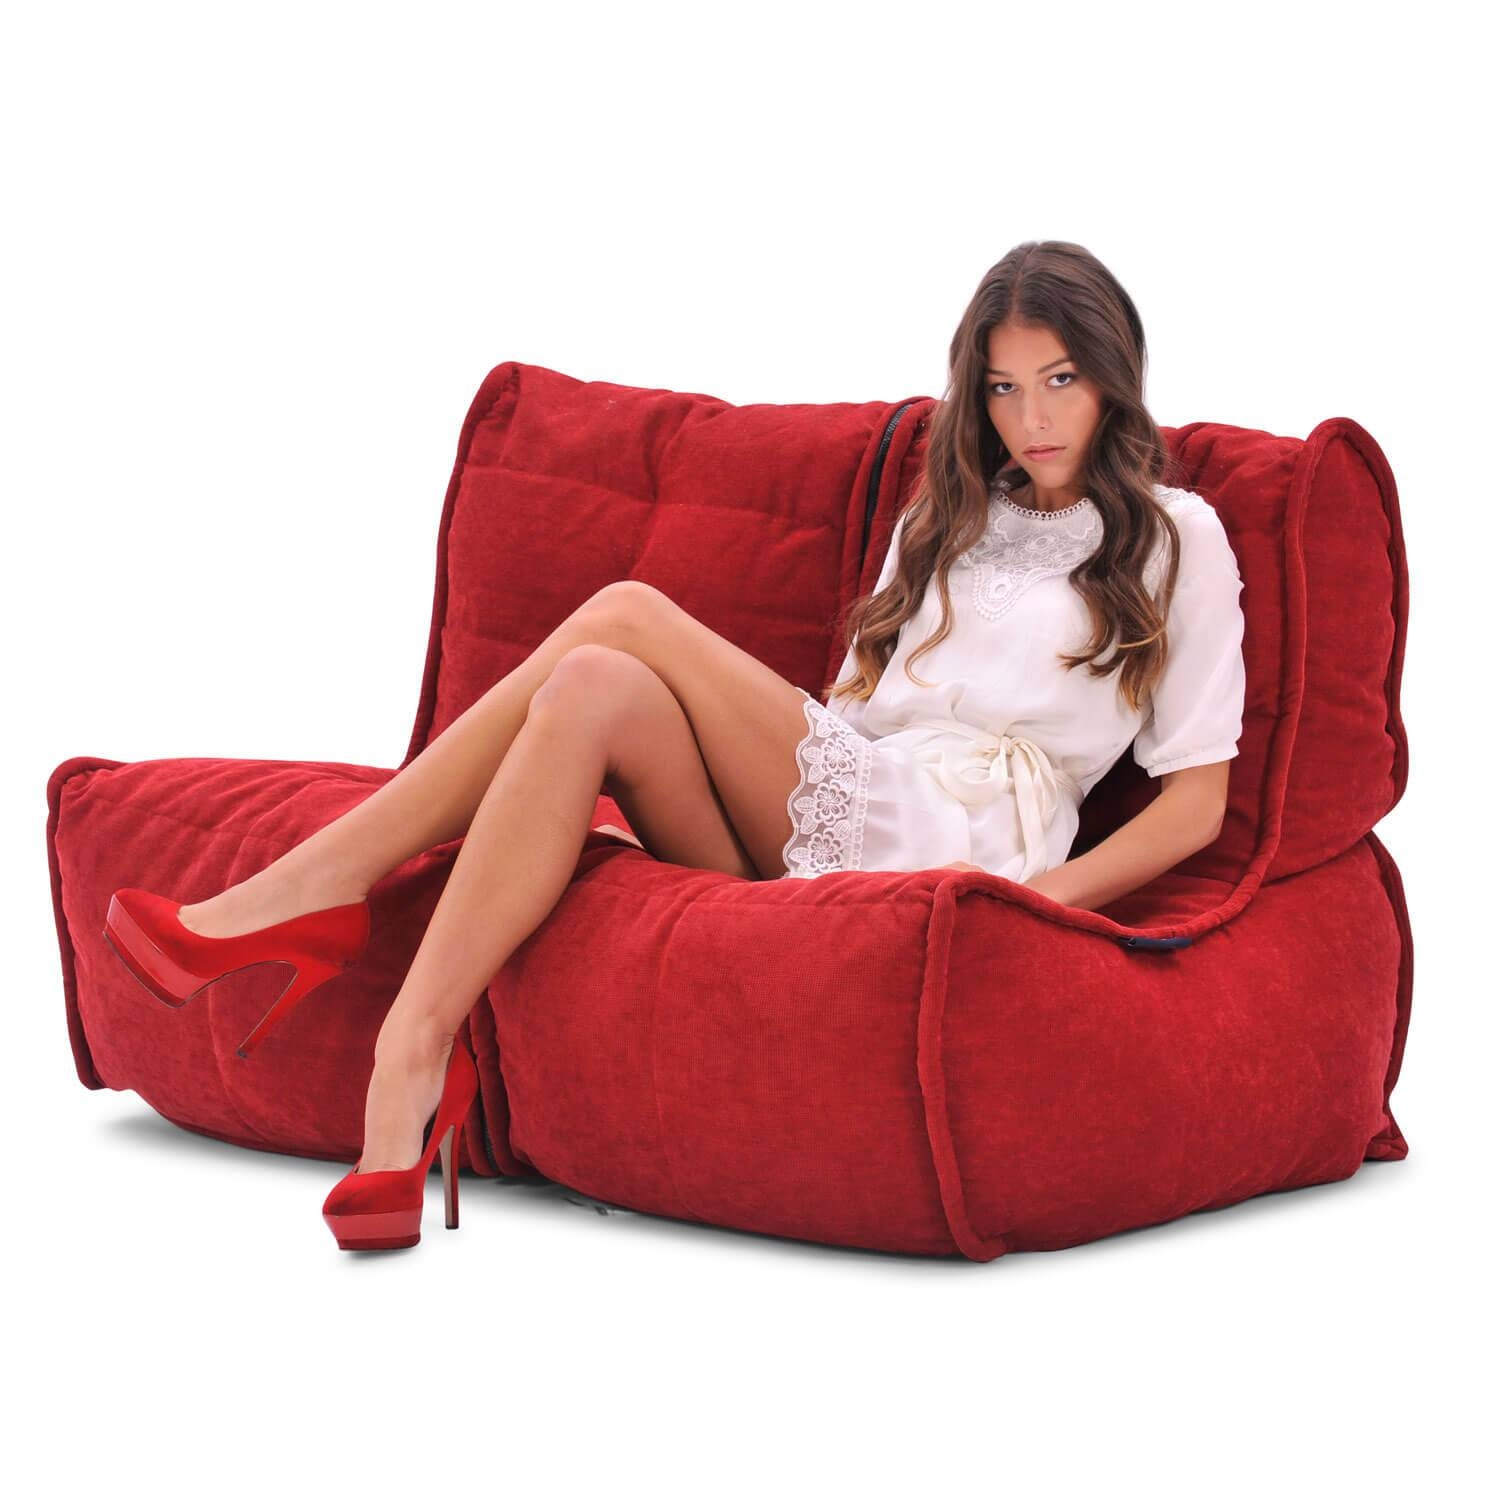 2 Seater Cream Sofa | Designer Bean Bag Couch | Bean Bag New Zealand pertaining to Bean Bag Sofa Chairs (Image 1 of 15)